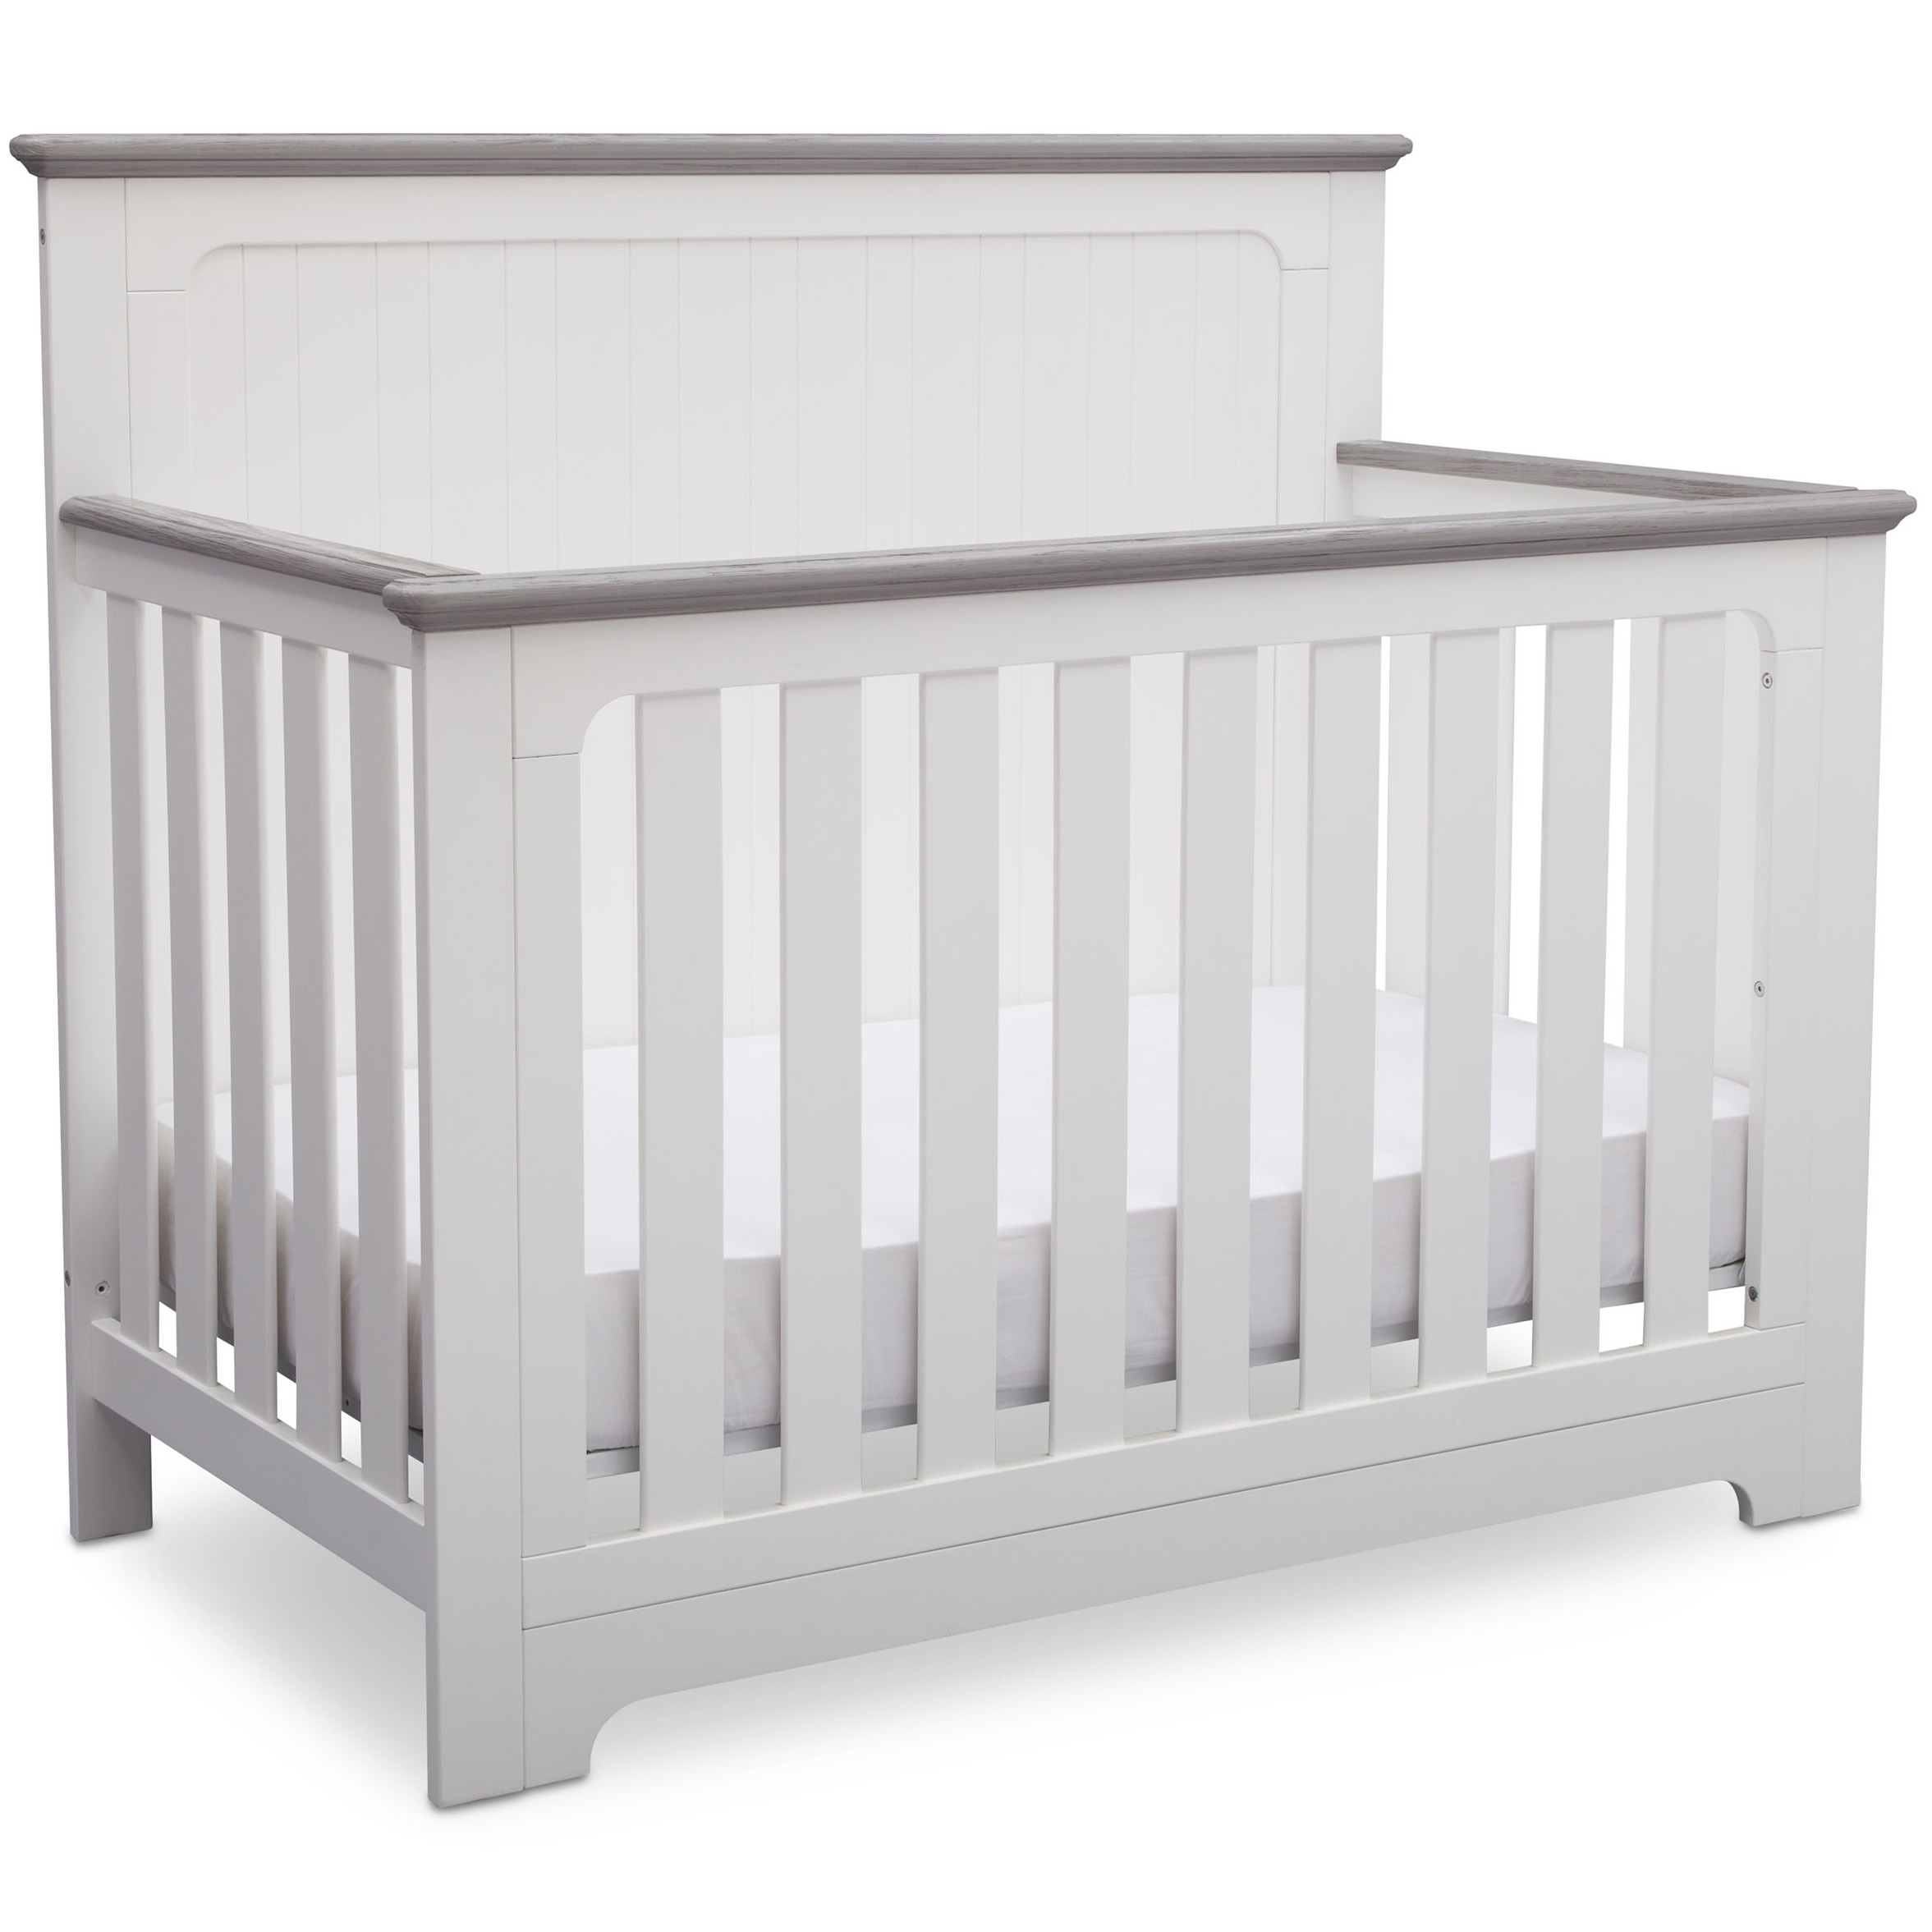 Delta Children Providence 4-in-1 Convertible Crib, Bianca White with Rustic Haze